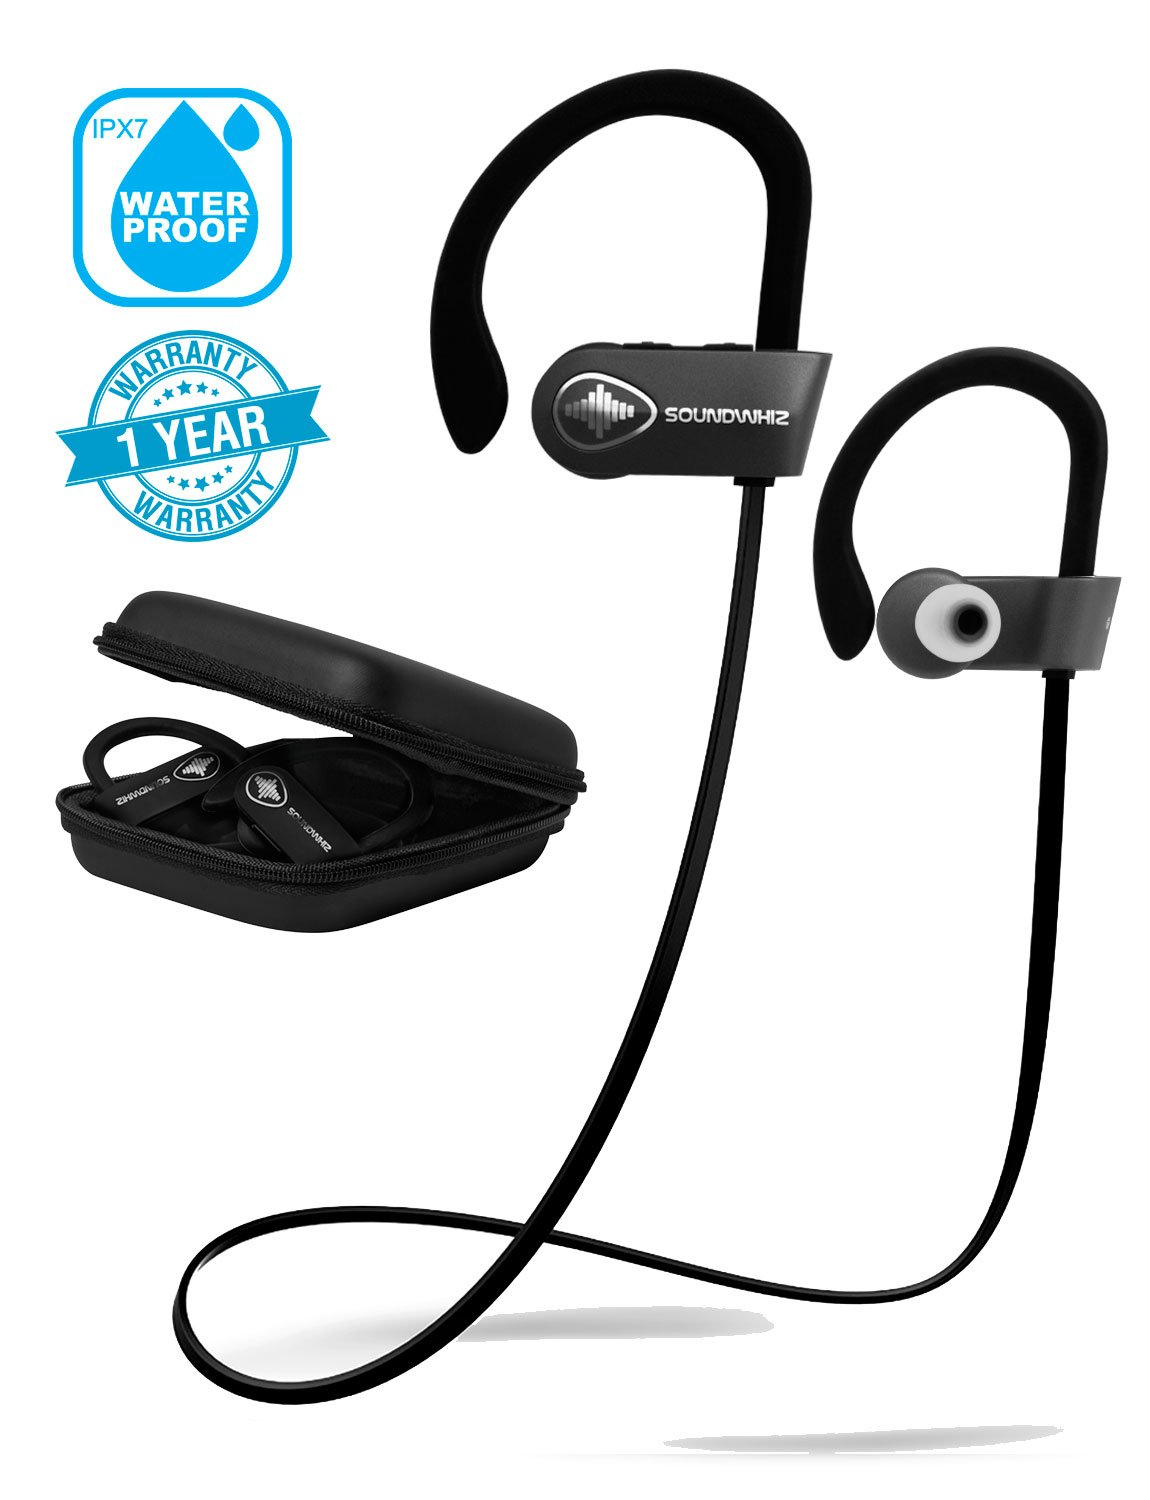 In Ear Wireless Sport Headphones - SoundWhiz Waterproof Workout Earbuds - w Noise Cancelling Mic & Siri. Best Running Headphones 8 Hours Play by SoundWhiz